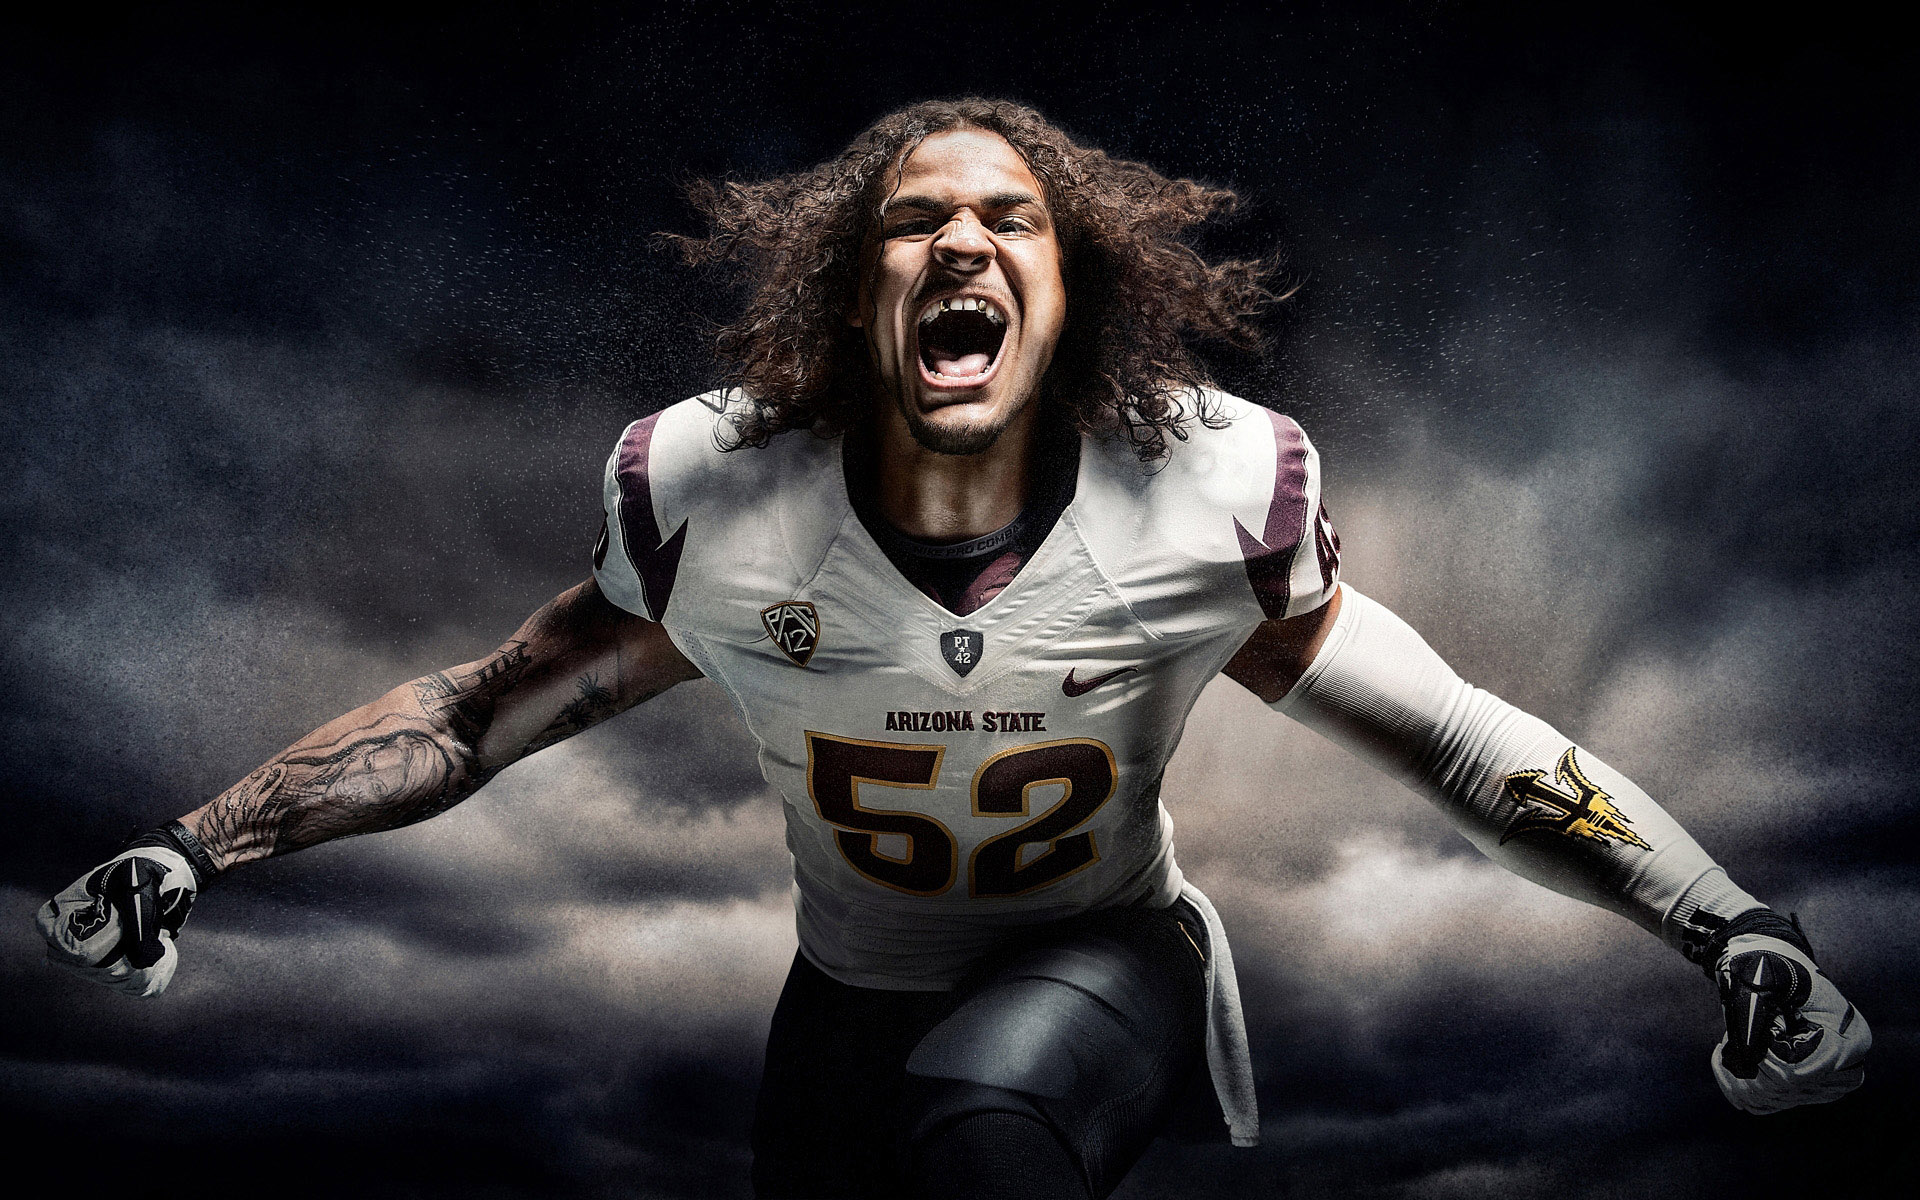 Arizona State Football campaign photographer